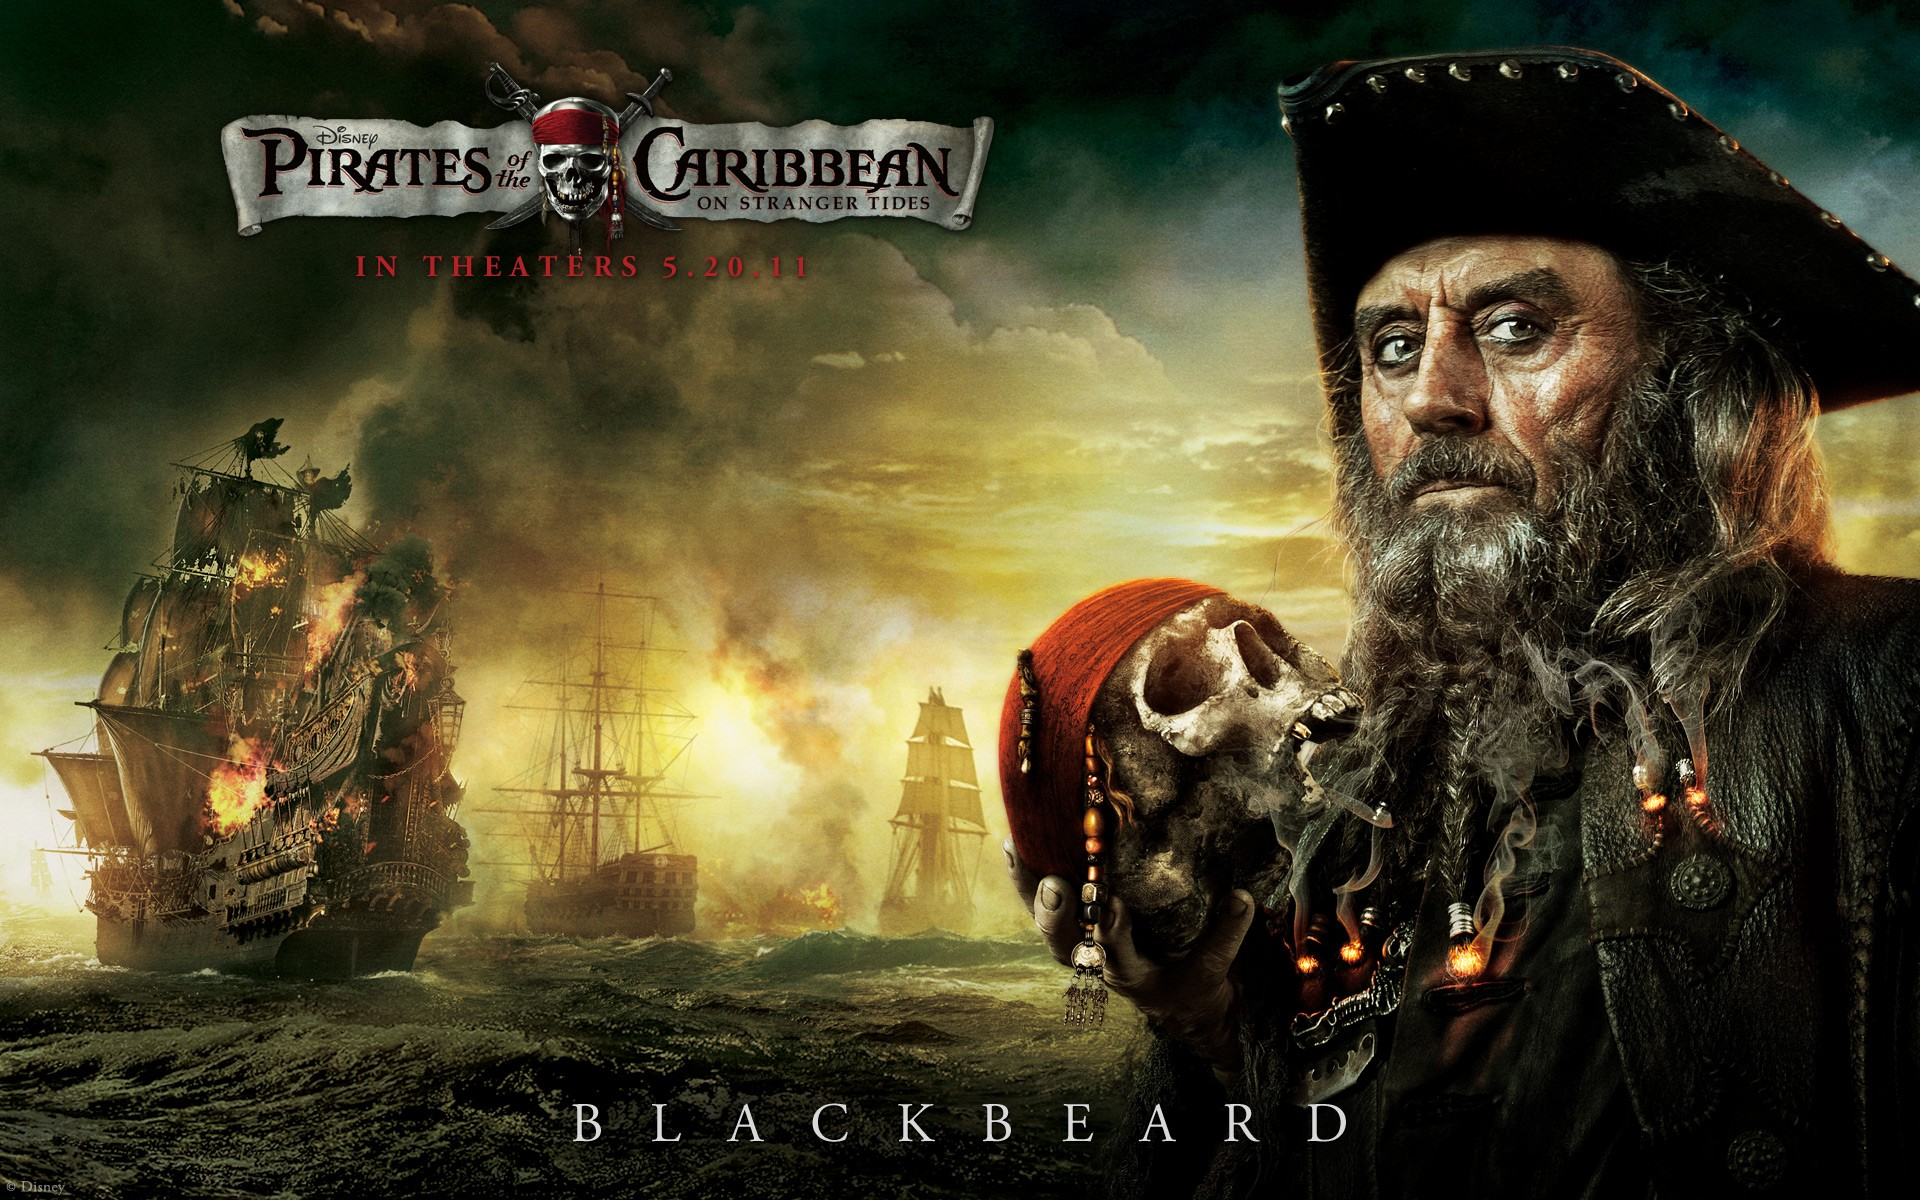 Screensaver with Blackbeard in the new Pirates of the Caribbean